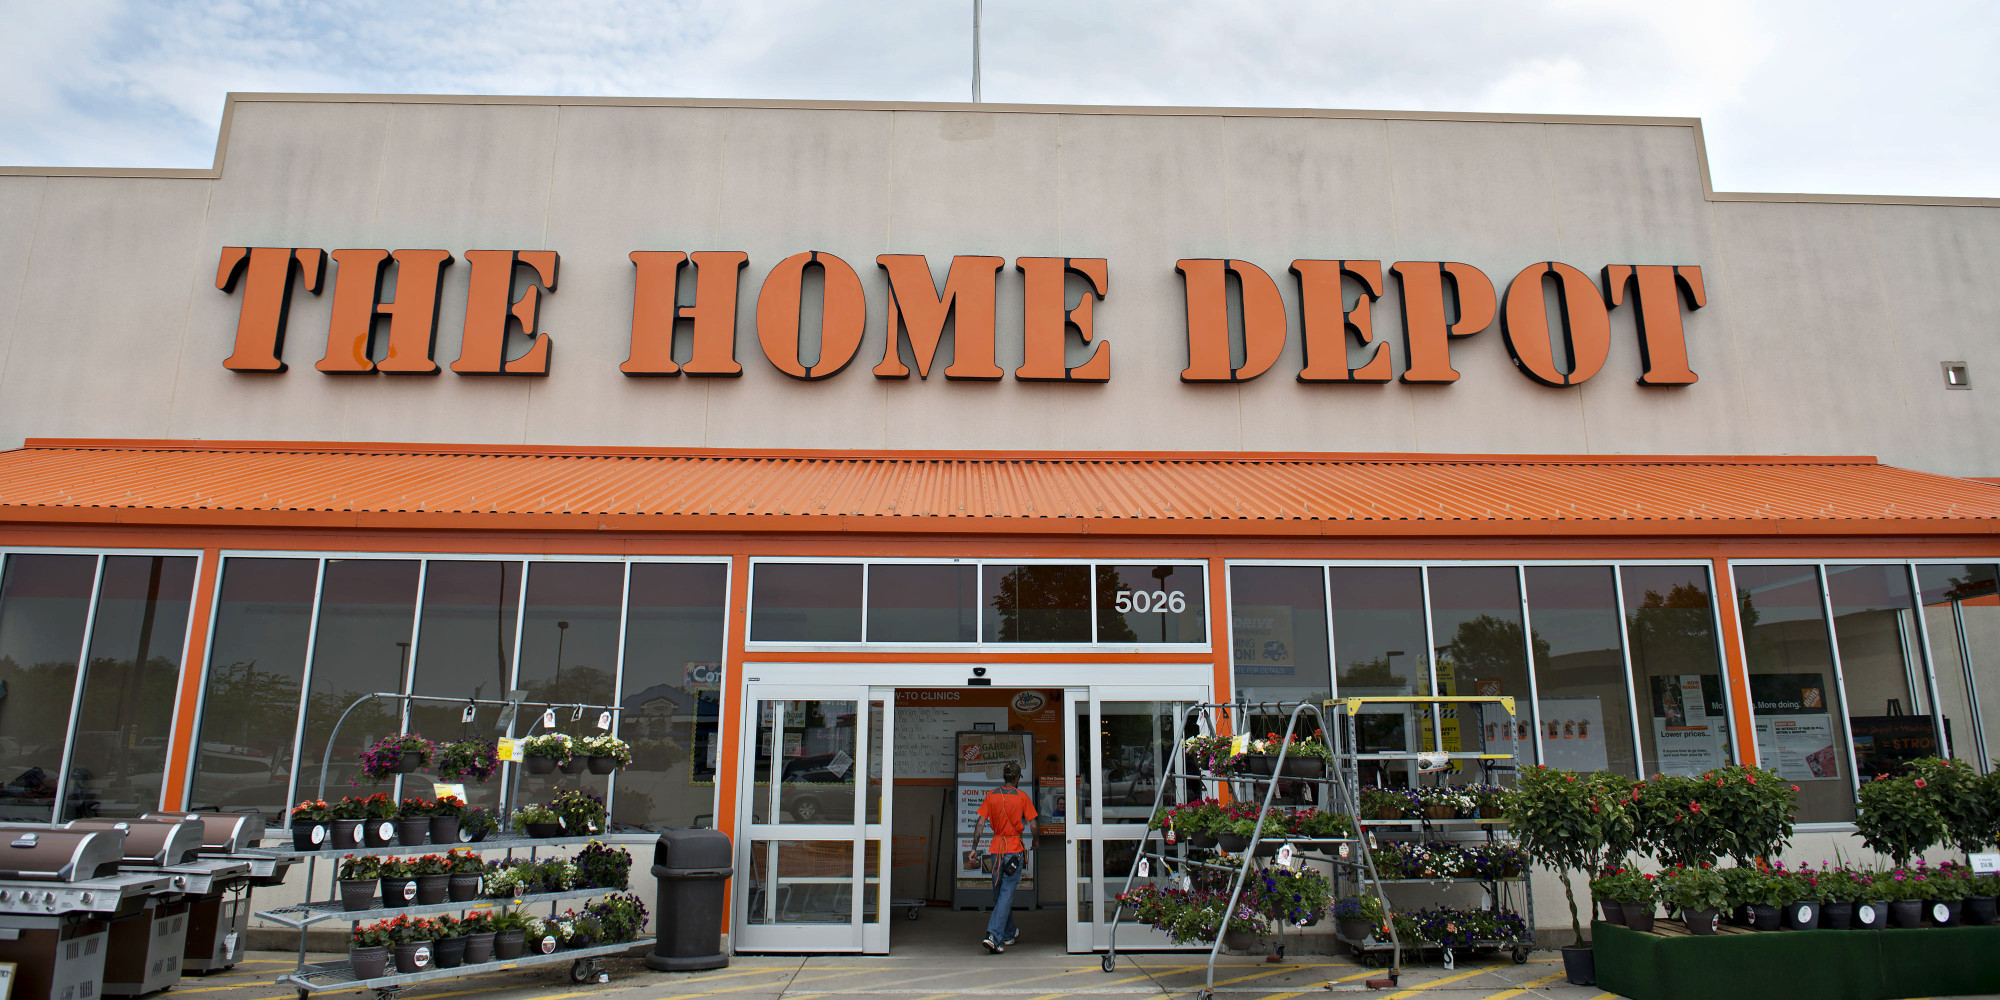 The Home Depot Inc. or Home Depot is an American home improvement supplies retailing company that sells tools, construction products, and services. The company is headquartered at the Atlanta Store Support Center in unincorporated Cobb County, Georgia (with an Atlanta mailing address).